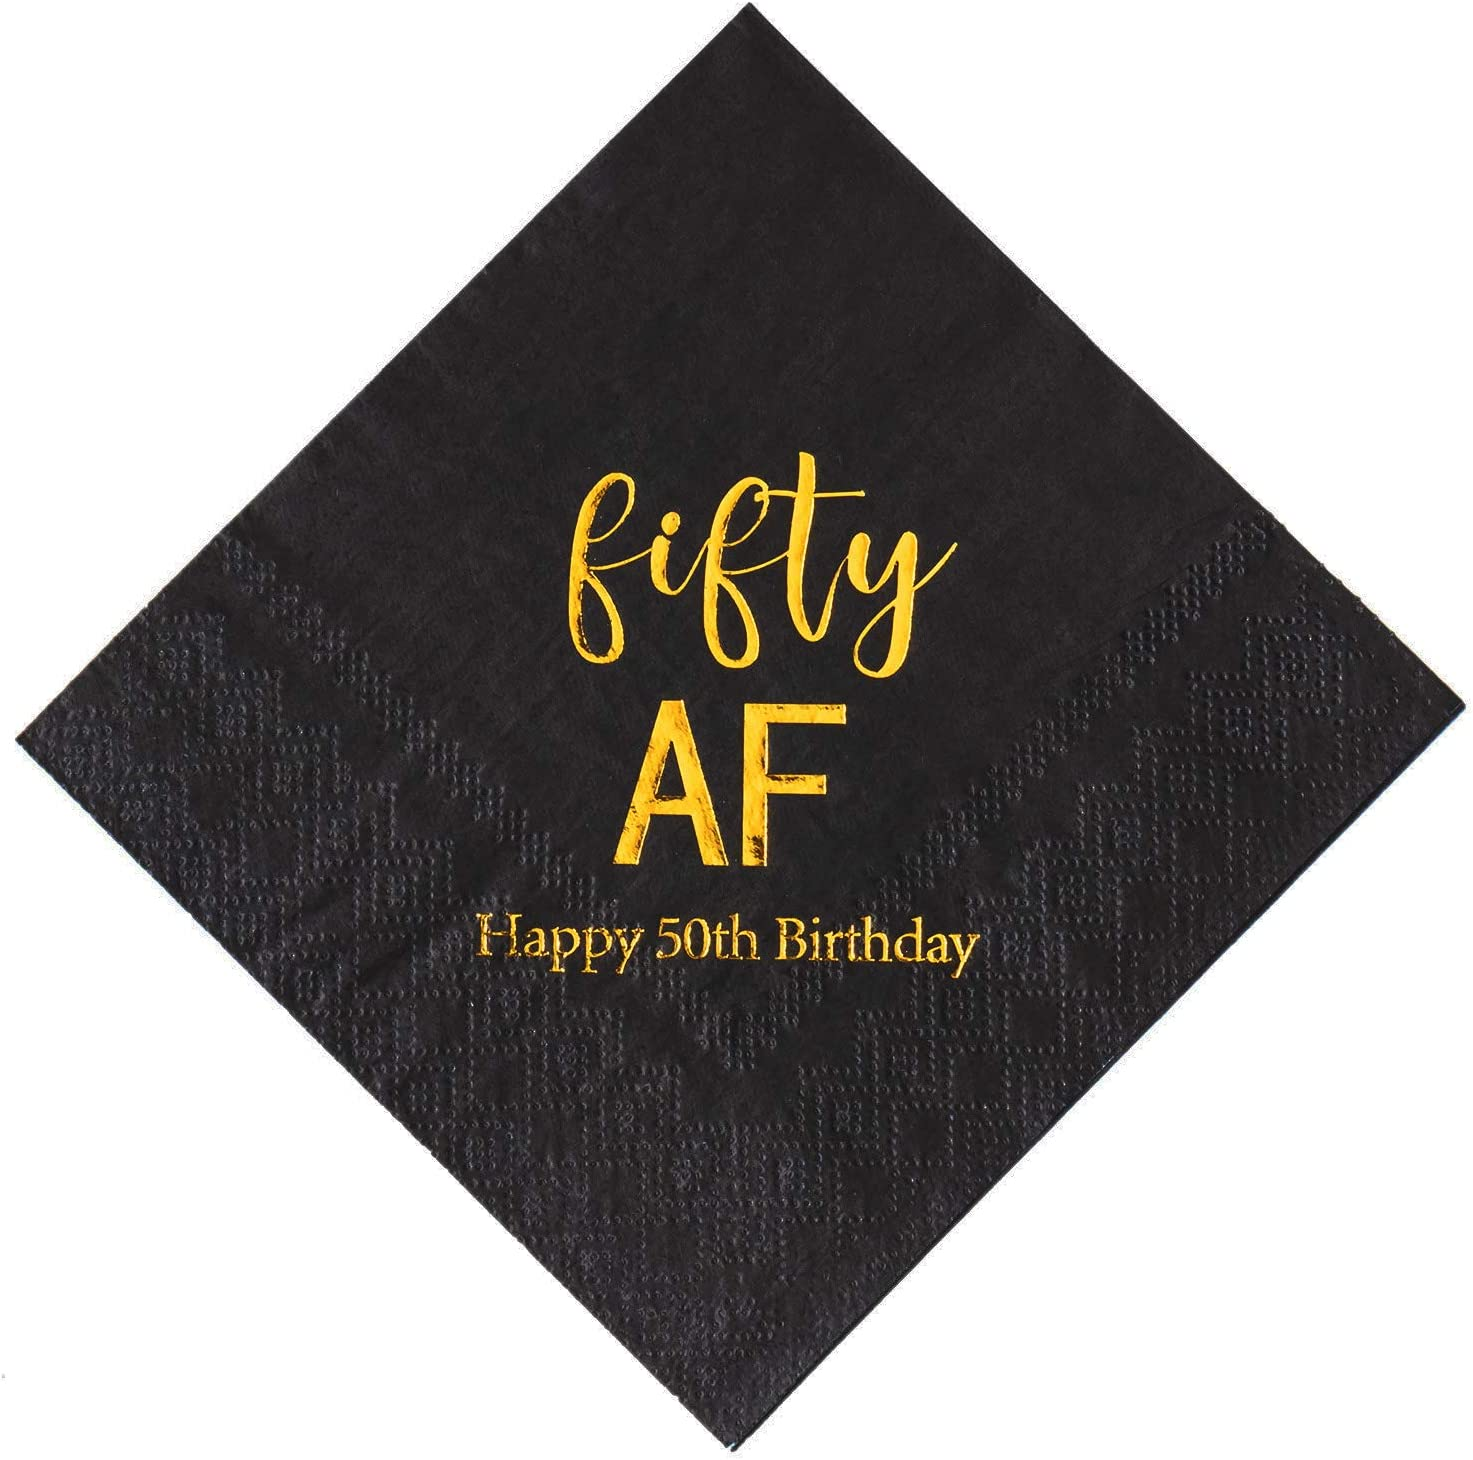 Crisky 50th Birthday Napkins Black Gold Fifty 50th Birthday Cocktail Napkins Beverage Napkins 50th Birthday Party Candy Table Decoration, 50 Count, 3-Ply